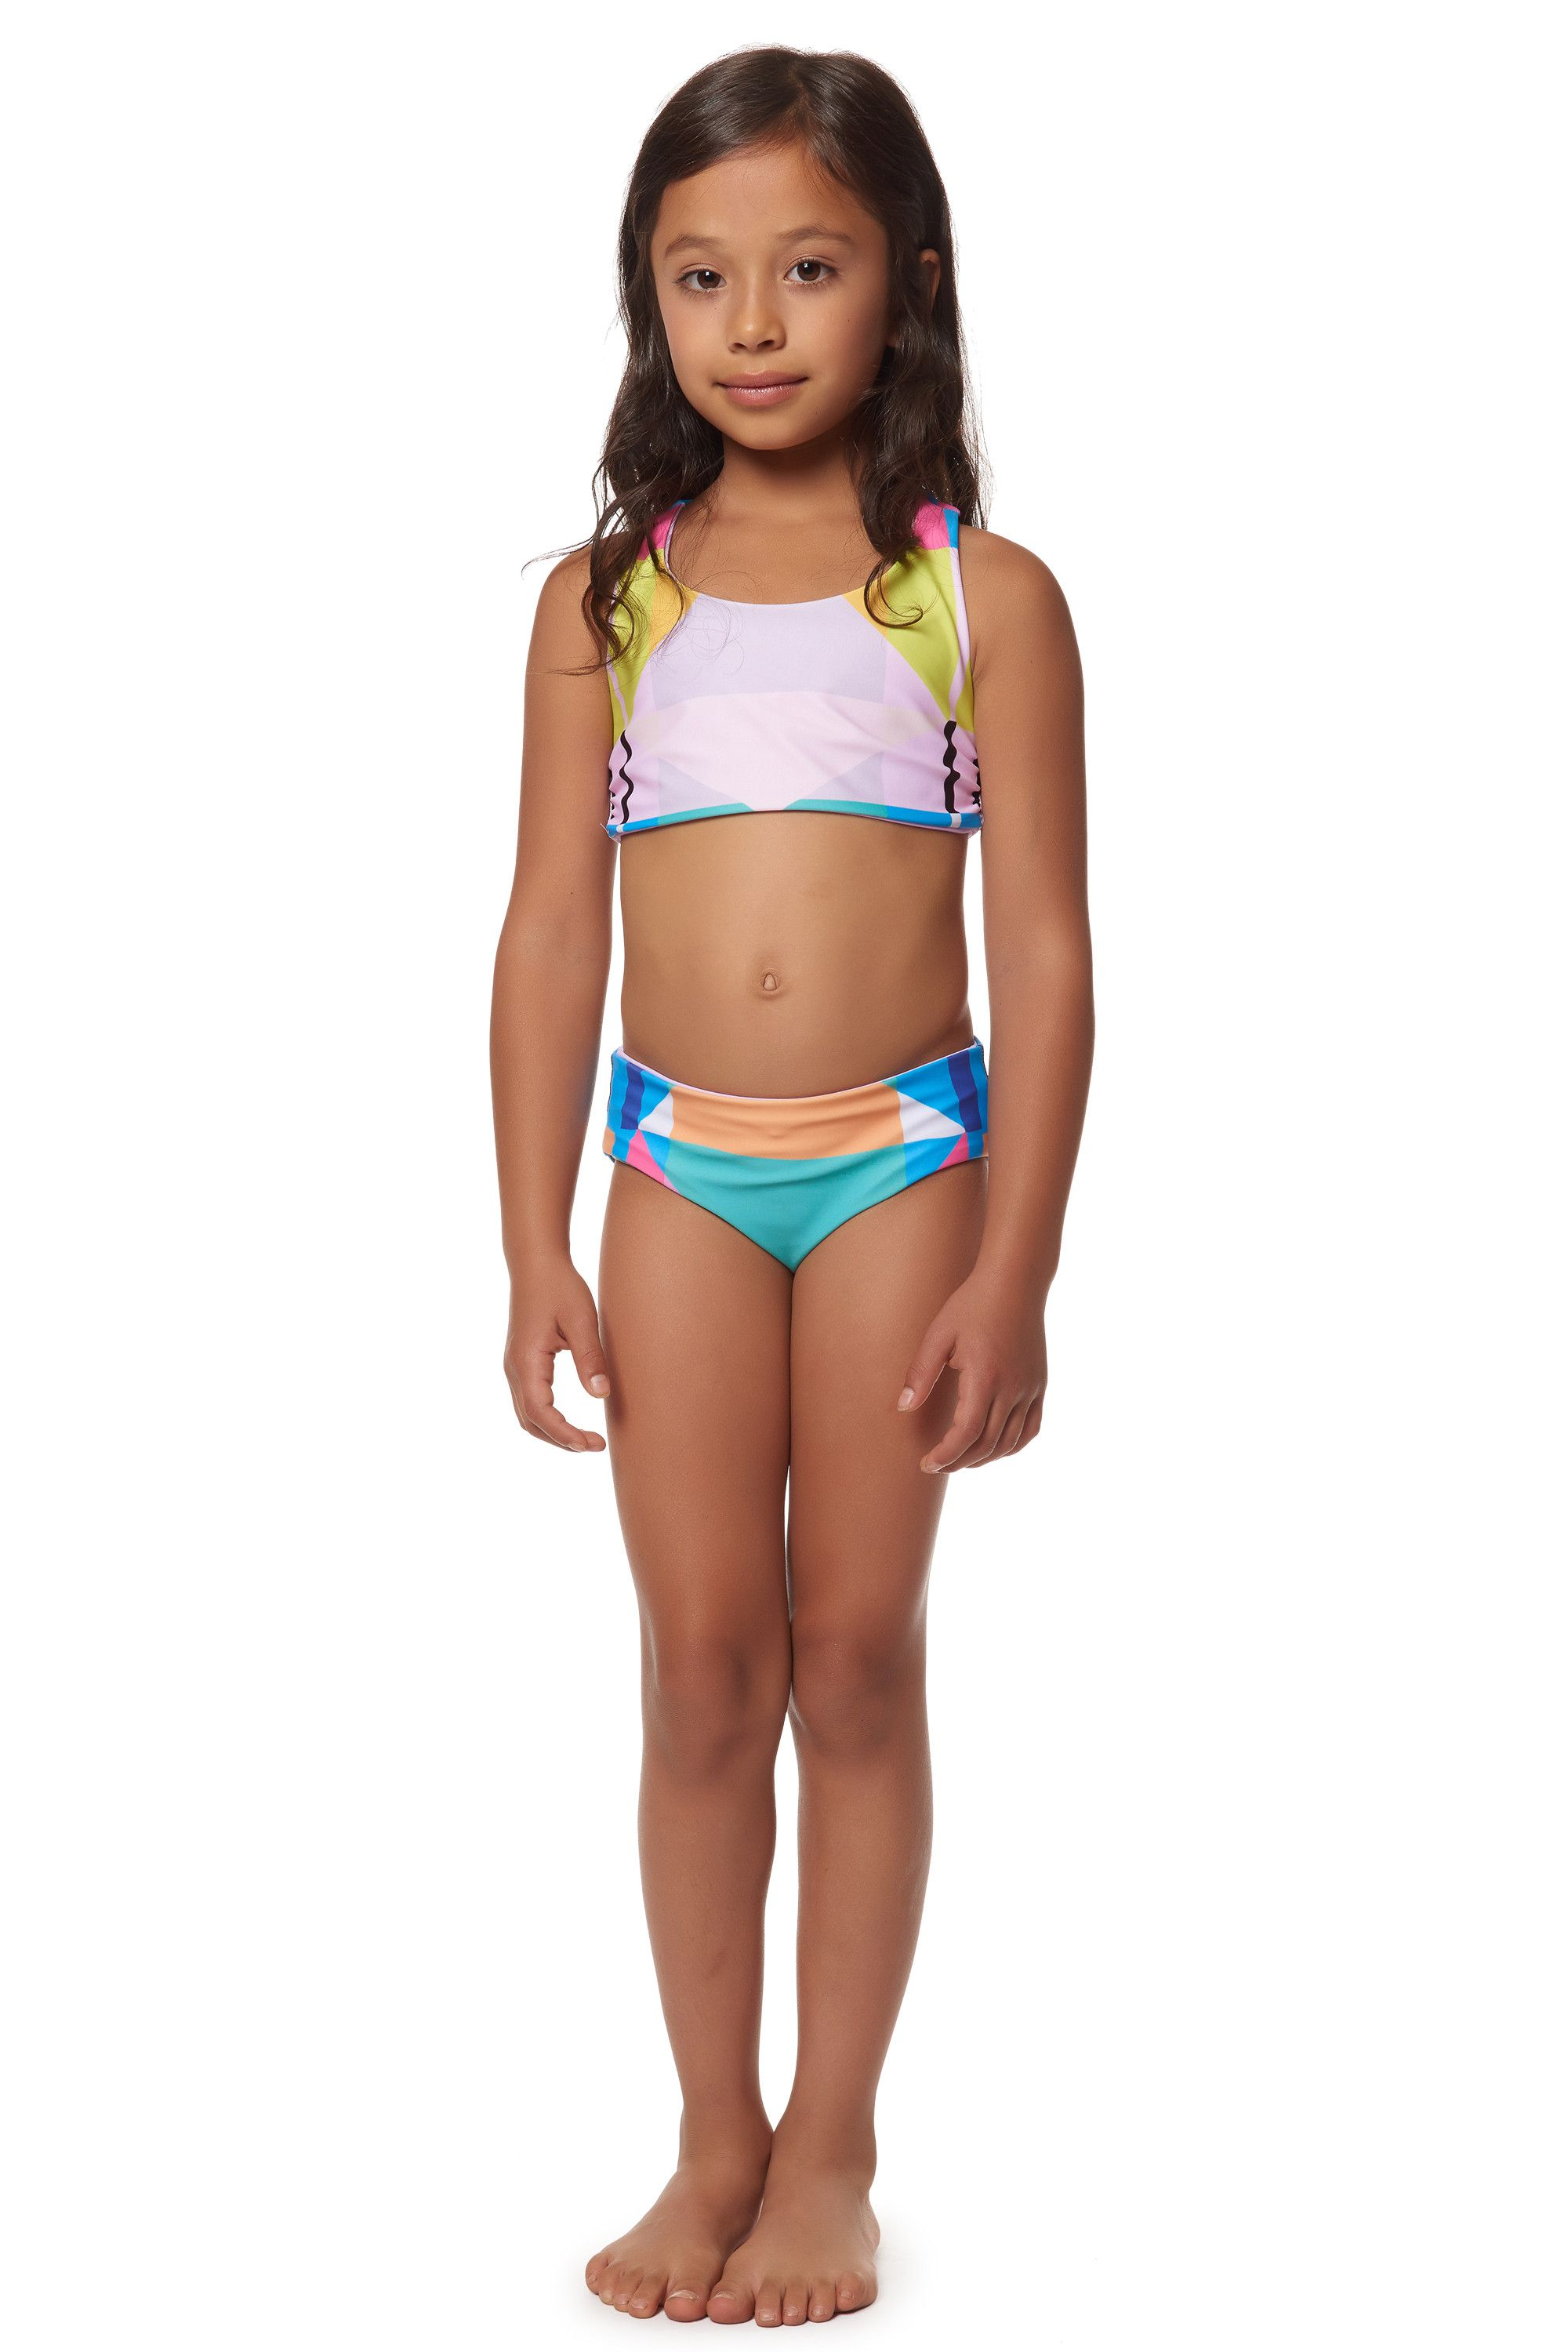 b39dcff622 Mother/daughter matching swimwear!! Too cute. Printed, cut and sewn in the  USA from imported fabricRecycled Nylon/SpandexHand wash cold, dry  flatFabric ...